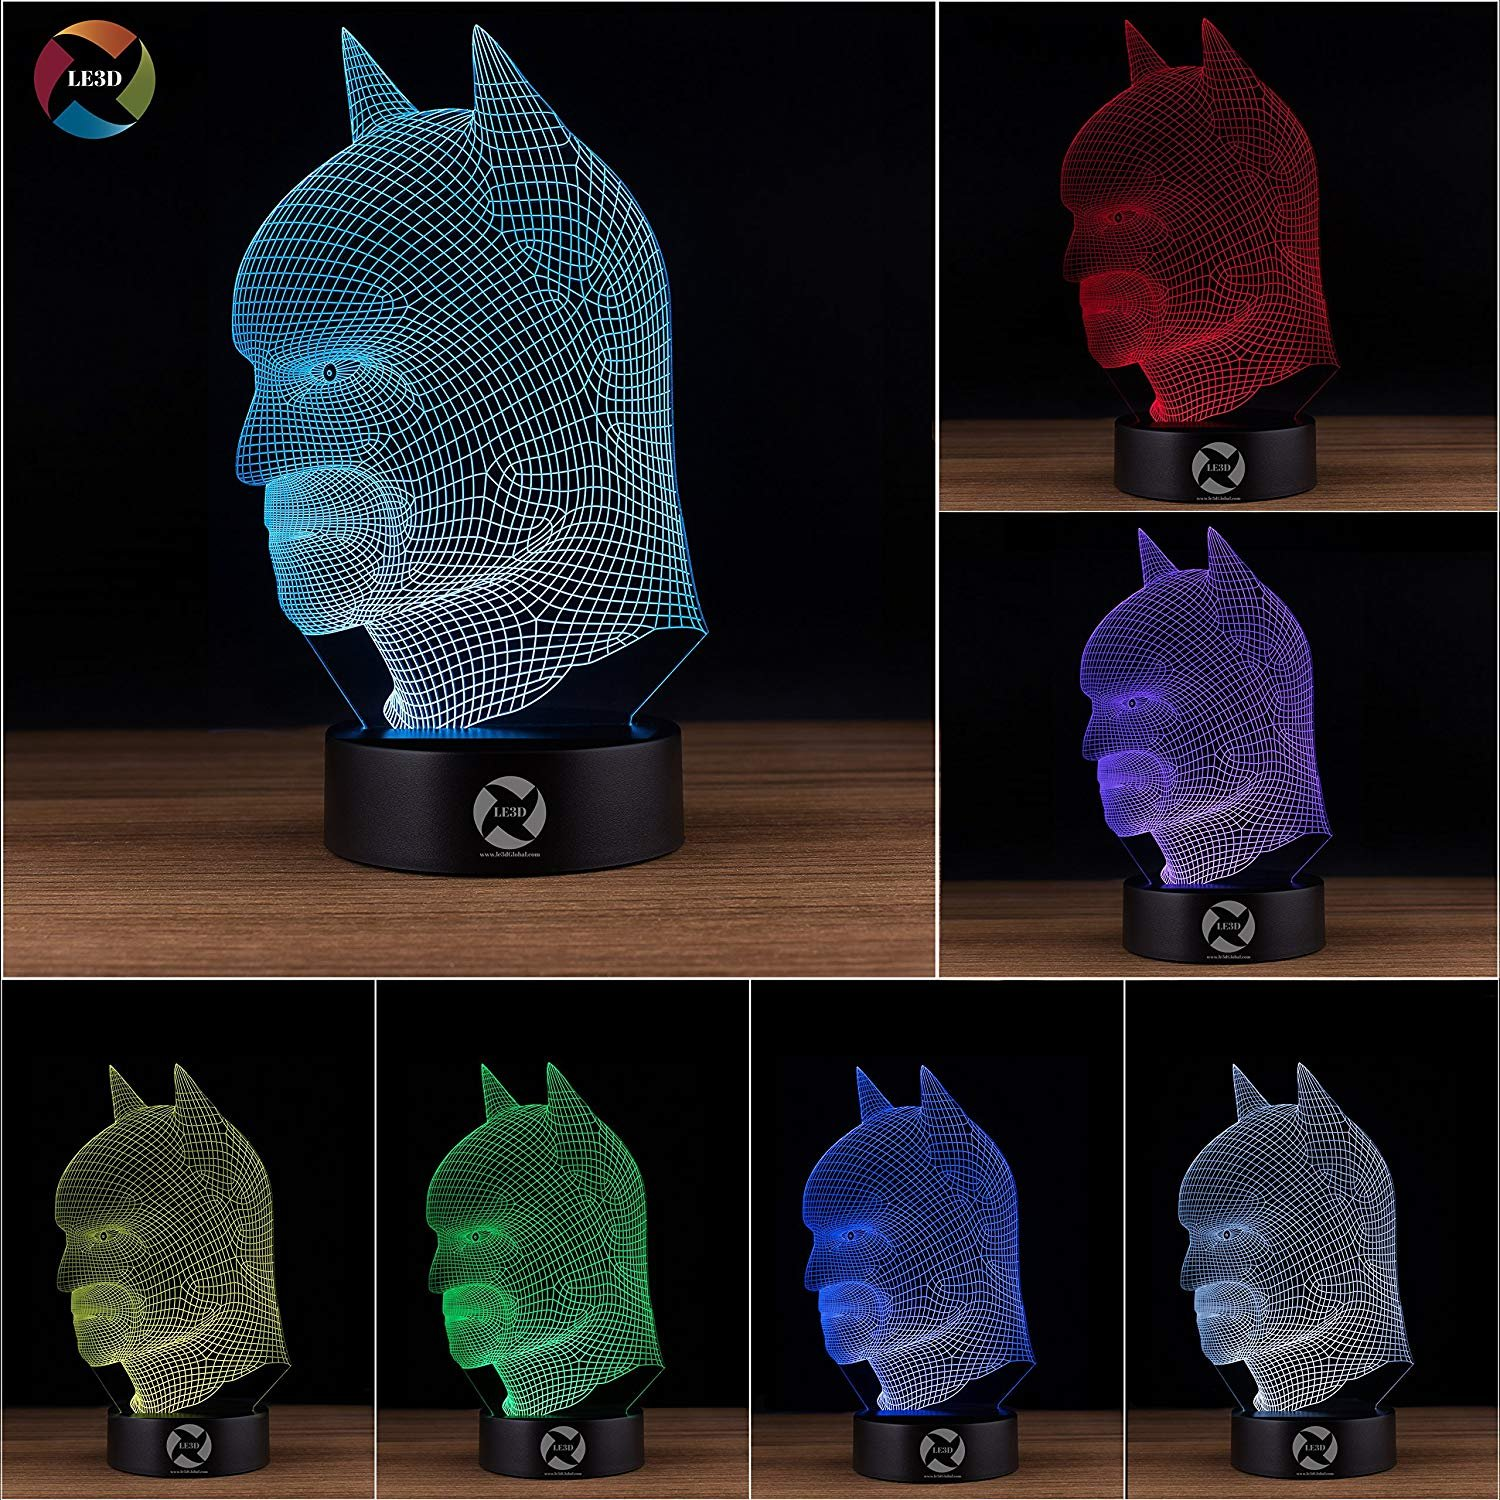 3D ナイトライト B0731JNDRT 10609 Batman (head) Batman (head)